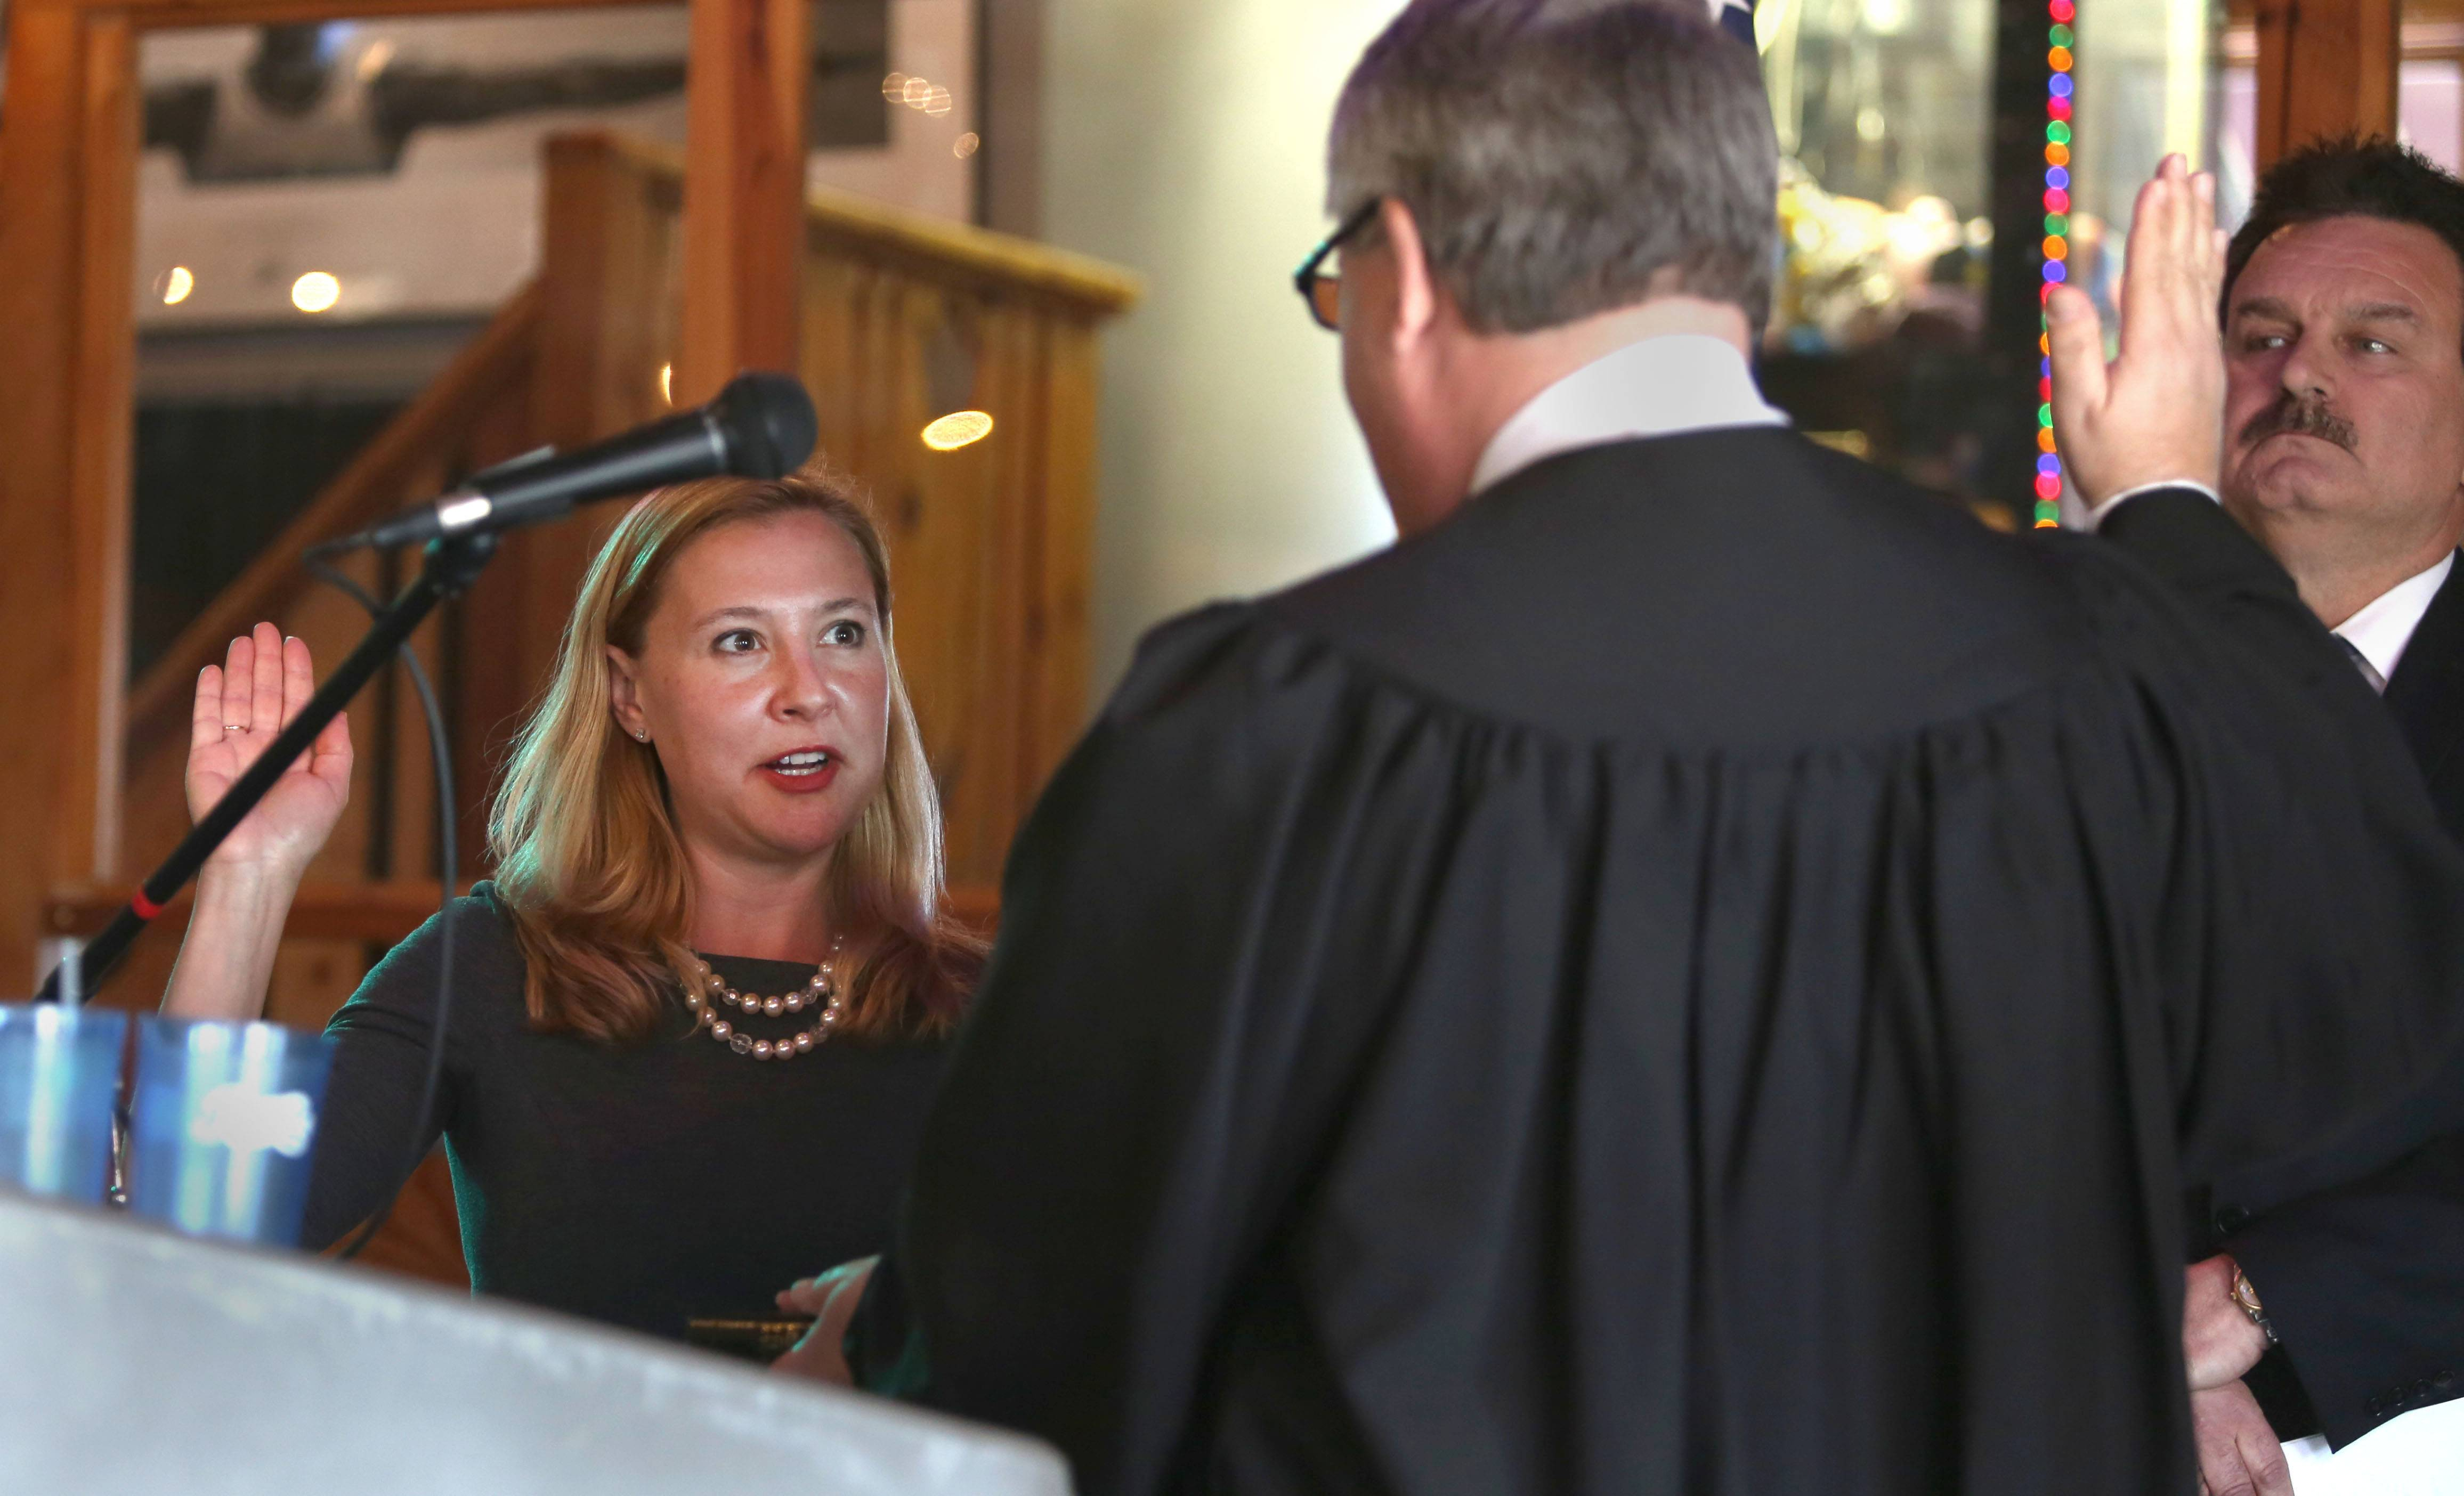 Judge John G. Dolton swears in Anna Moeller as the new state representative for the 43rd District. Moeller, who recently resigned from the Elgin City Council, said she plans to run for election in November.